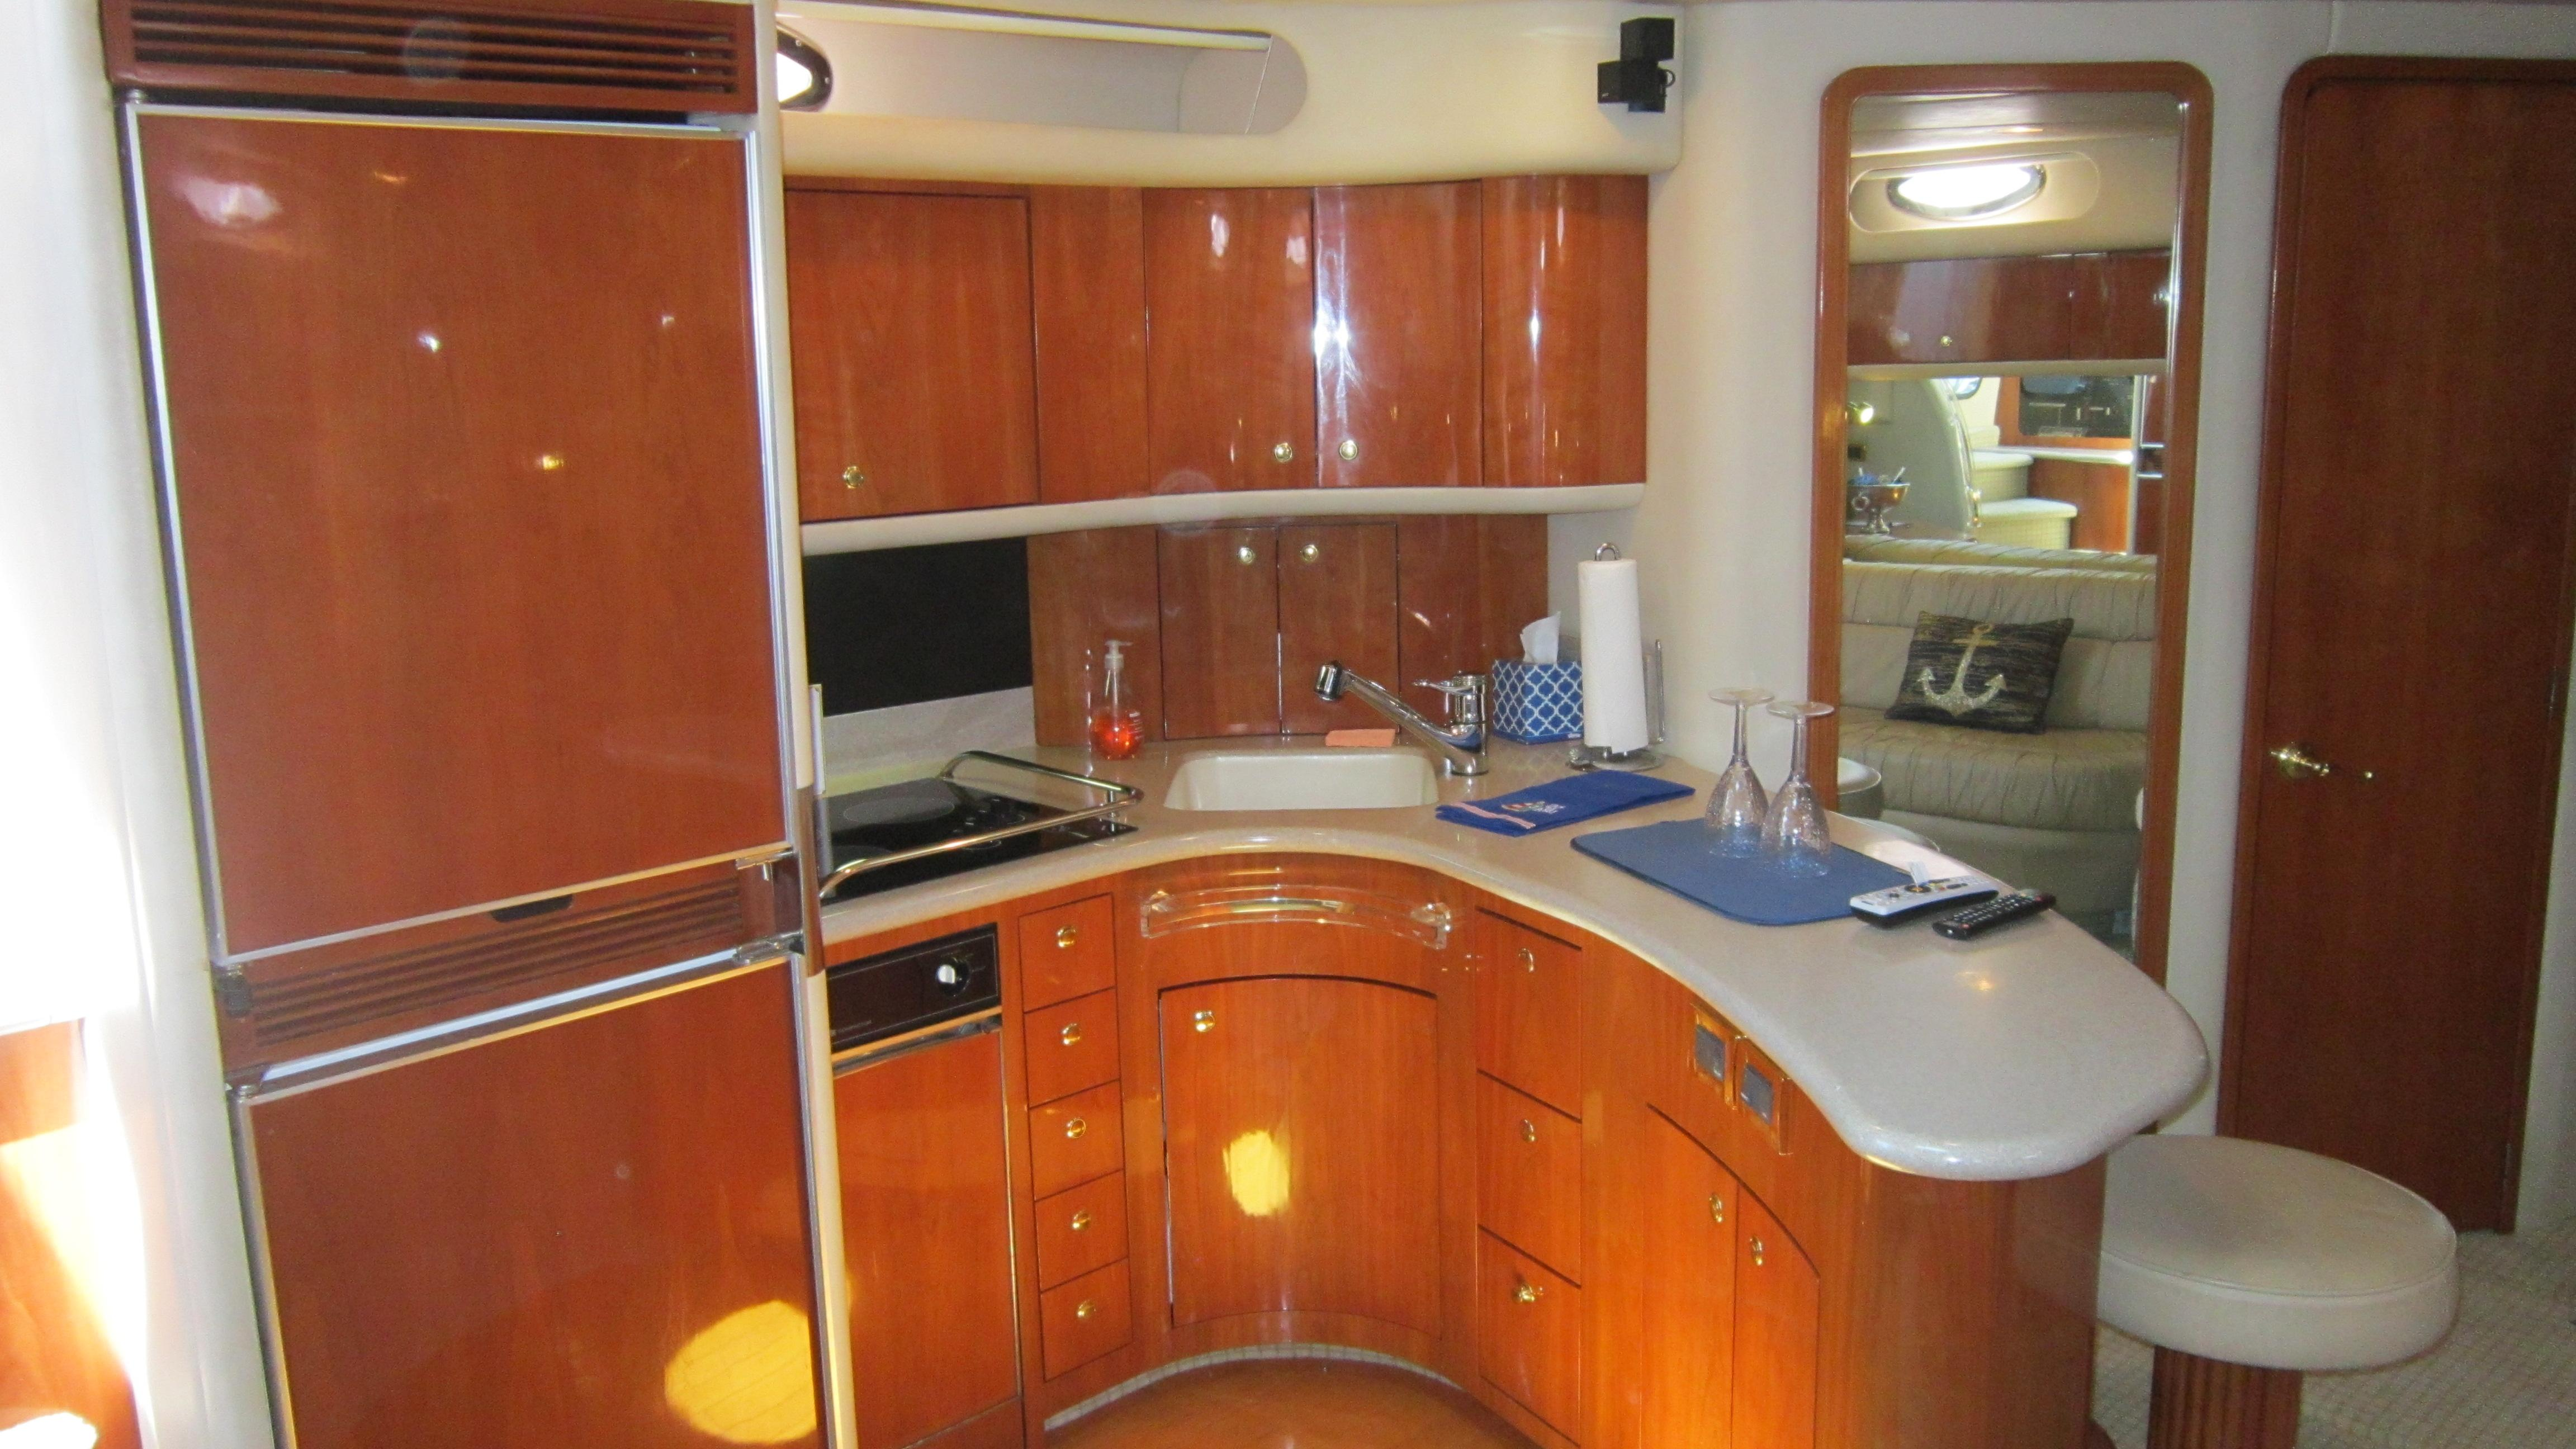 Galley Frig and counter space